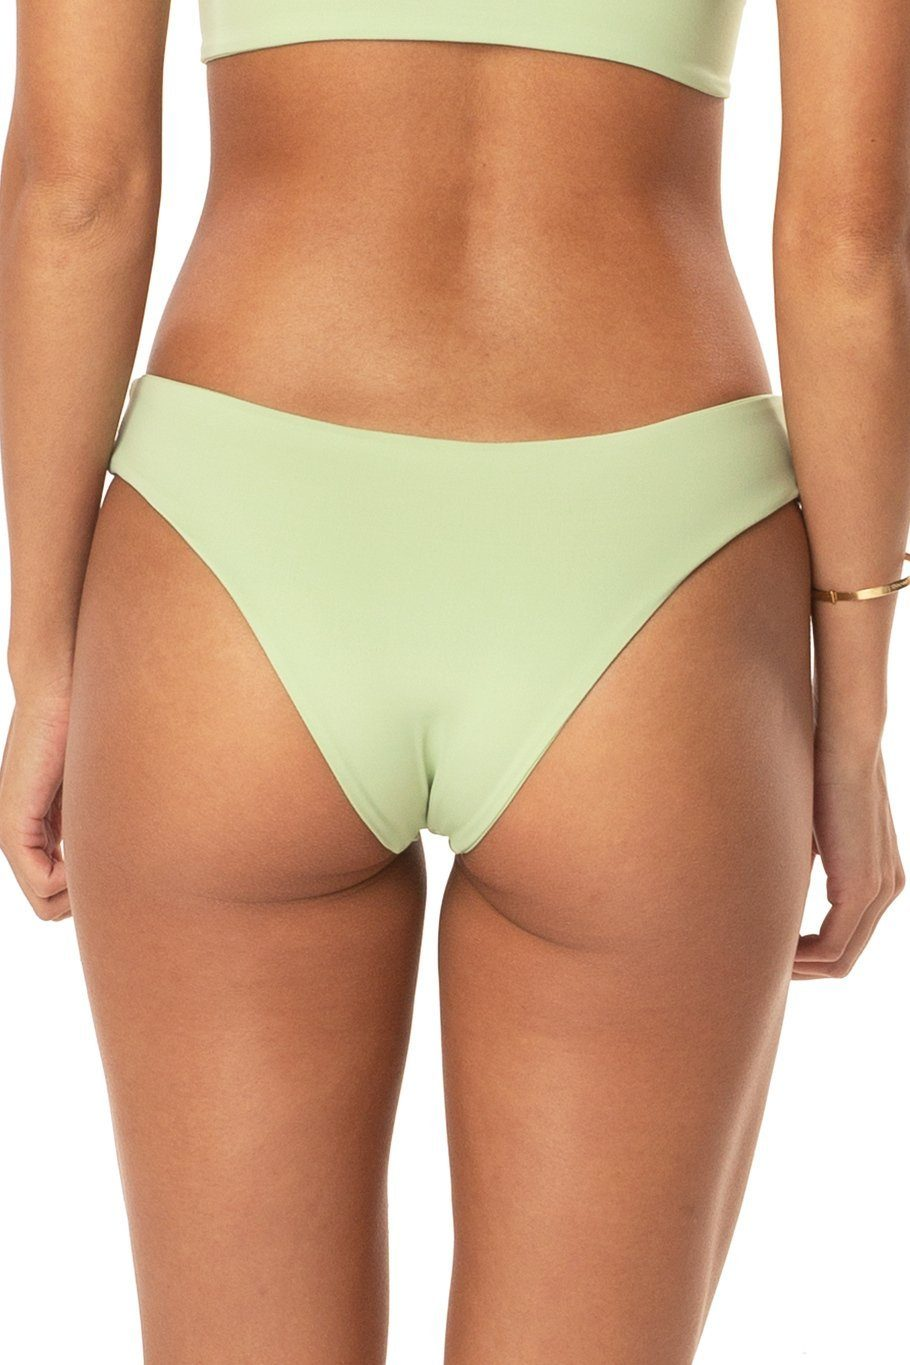 Skimpy Bikini Bottom - Key Lime - Shore